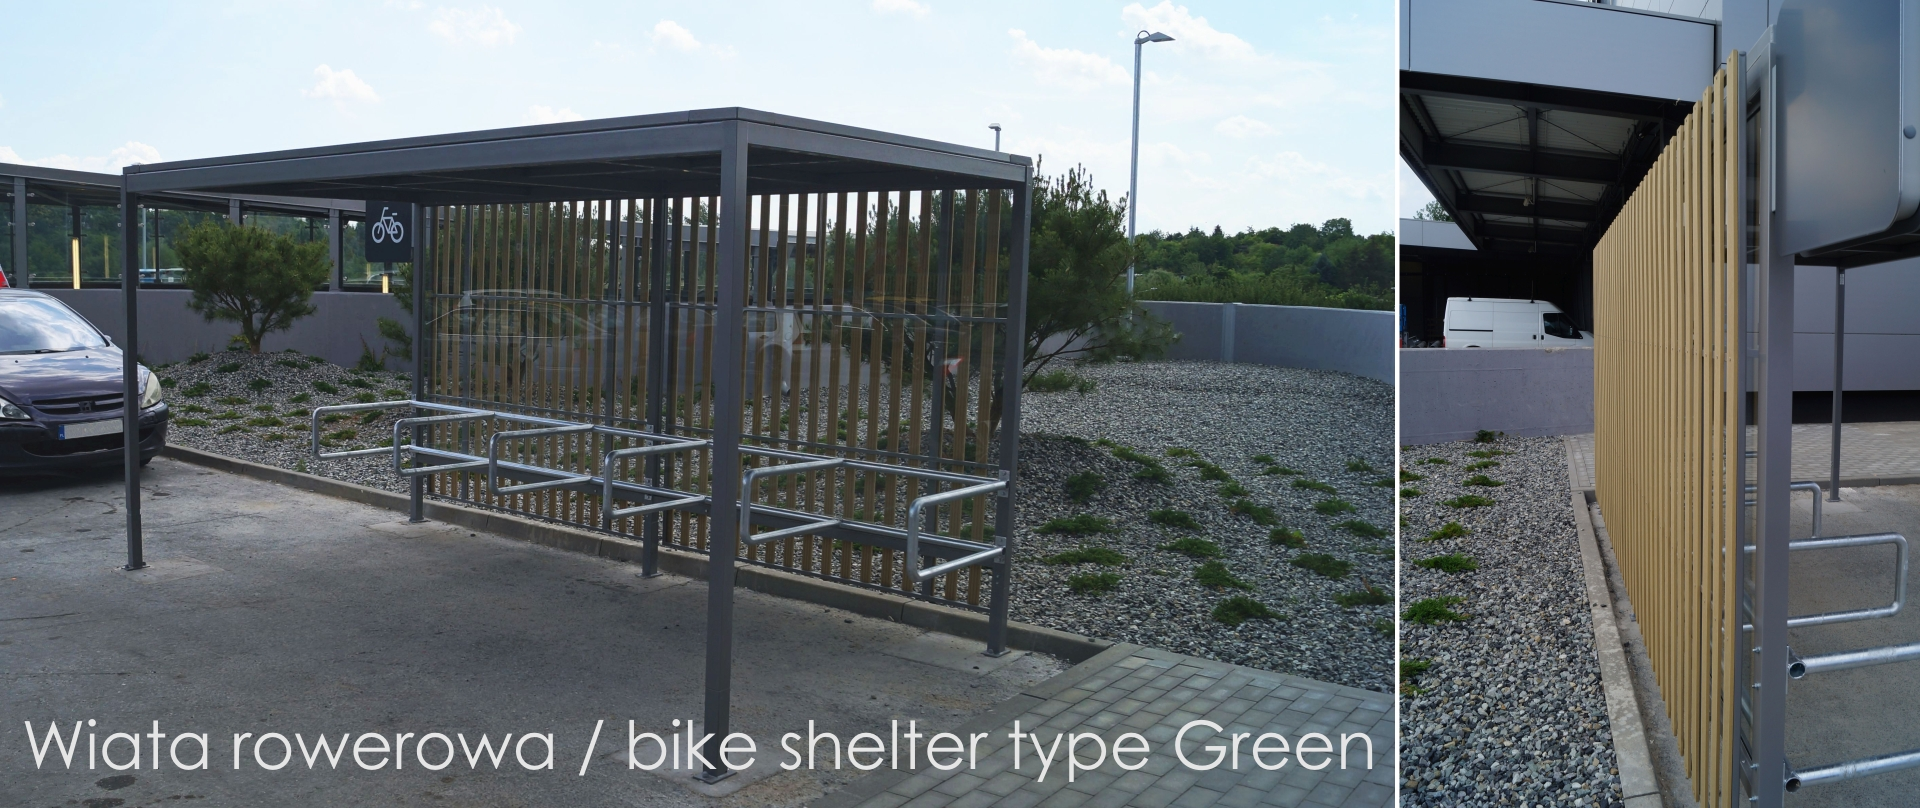 Wiata rowerowa (bike shelter) type Green